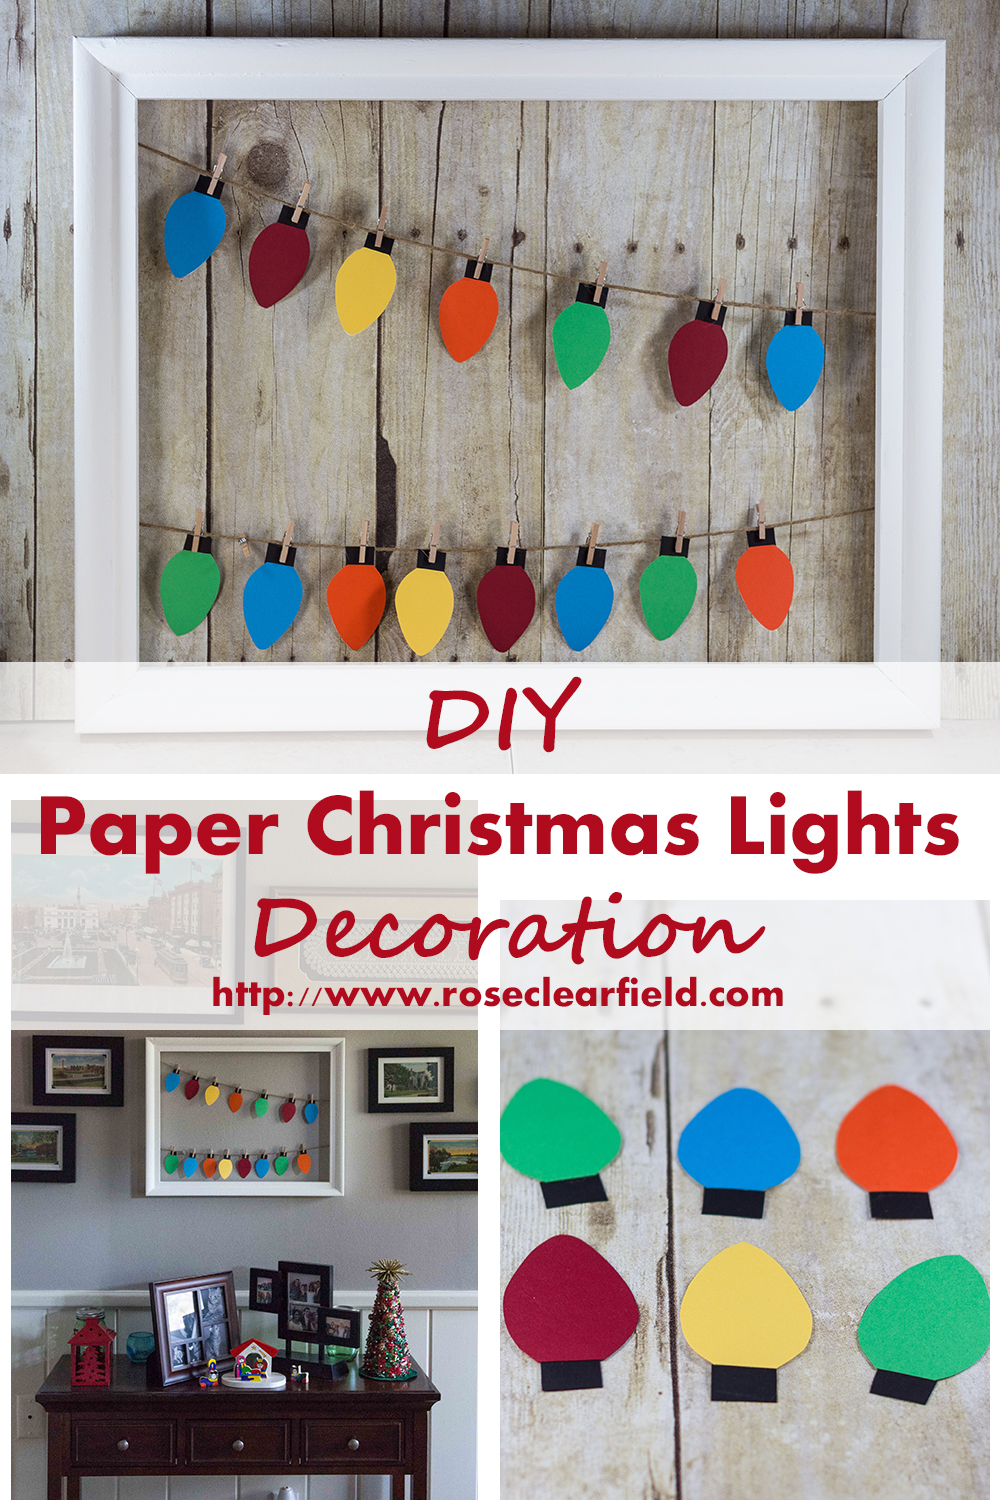 DIY Paper Christmas Lights Decoration Tutorial | https://www.roseclearfield.com